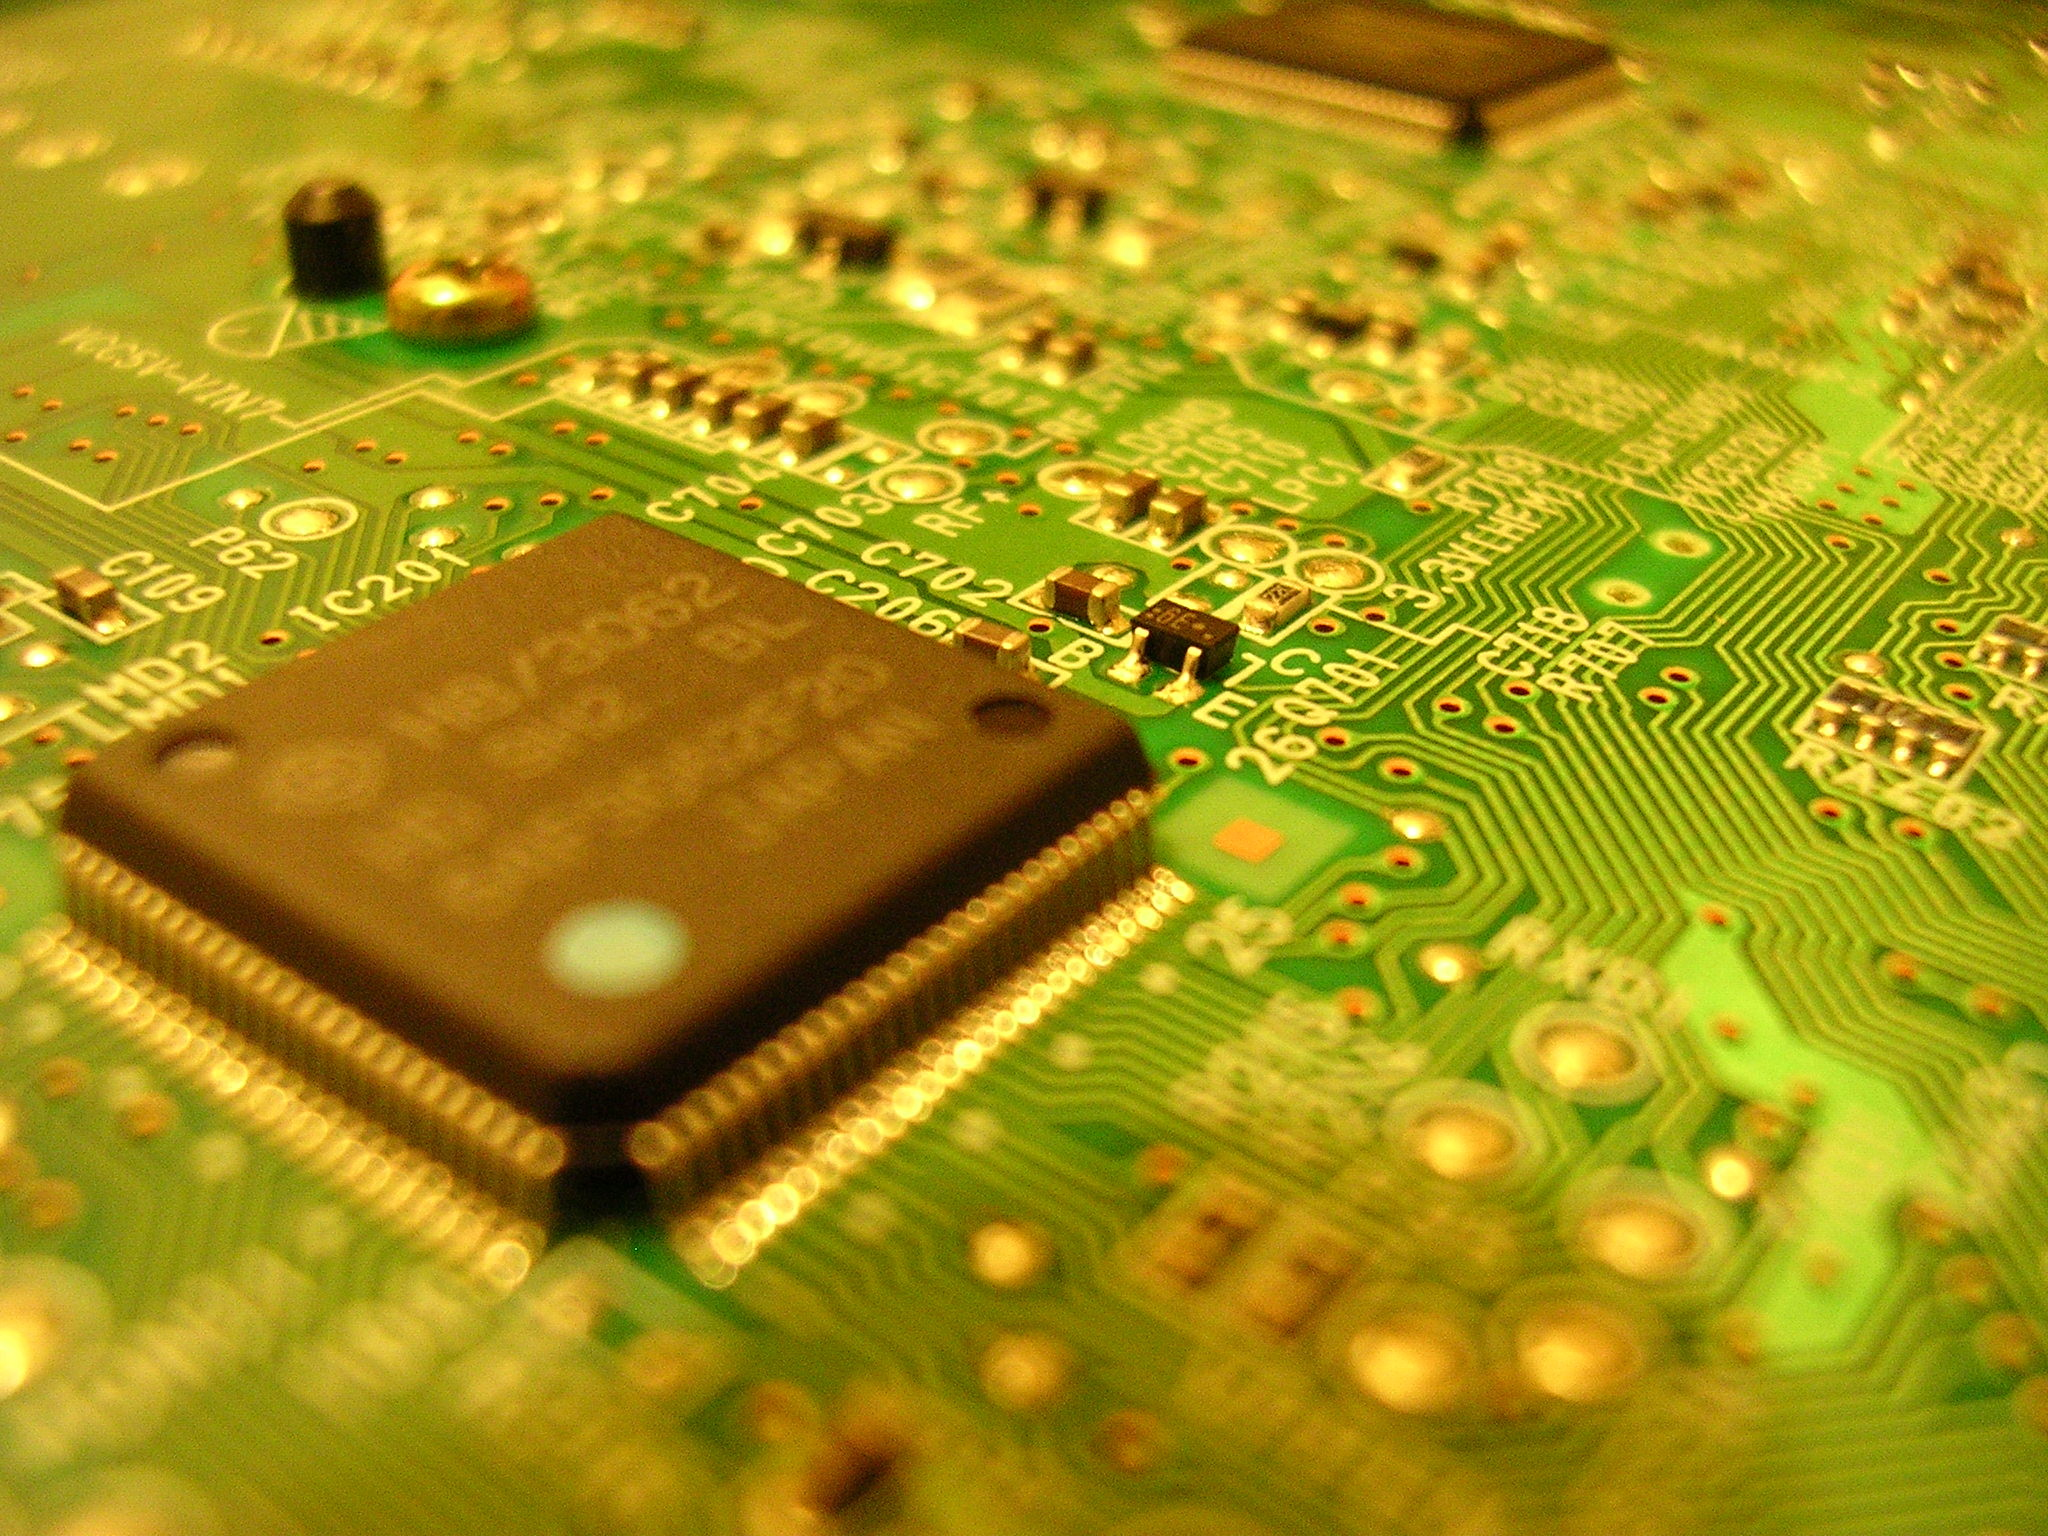 2048x1536 Computer Chip 1 by Kazzman Computer Chip 1 by Kazzman